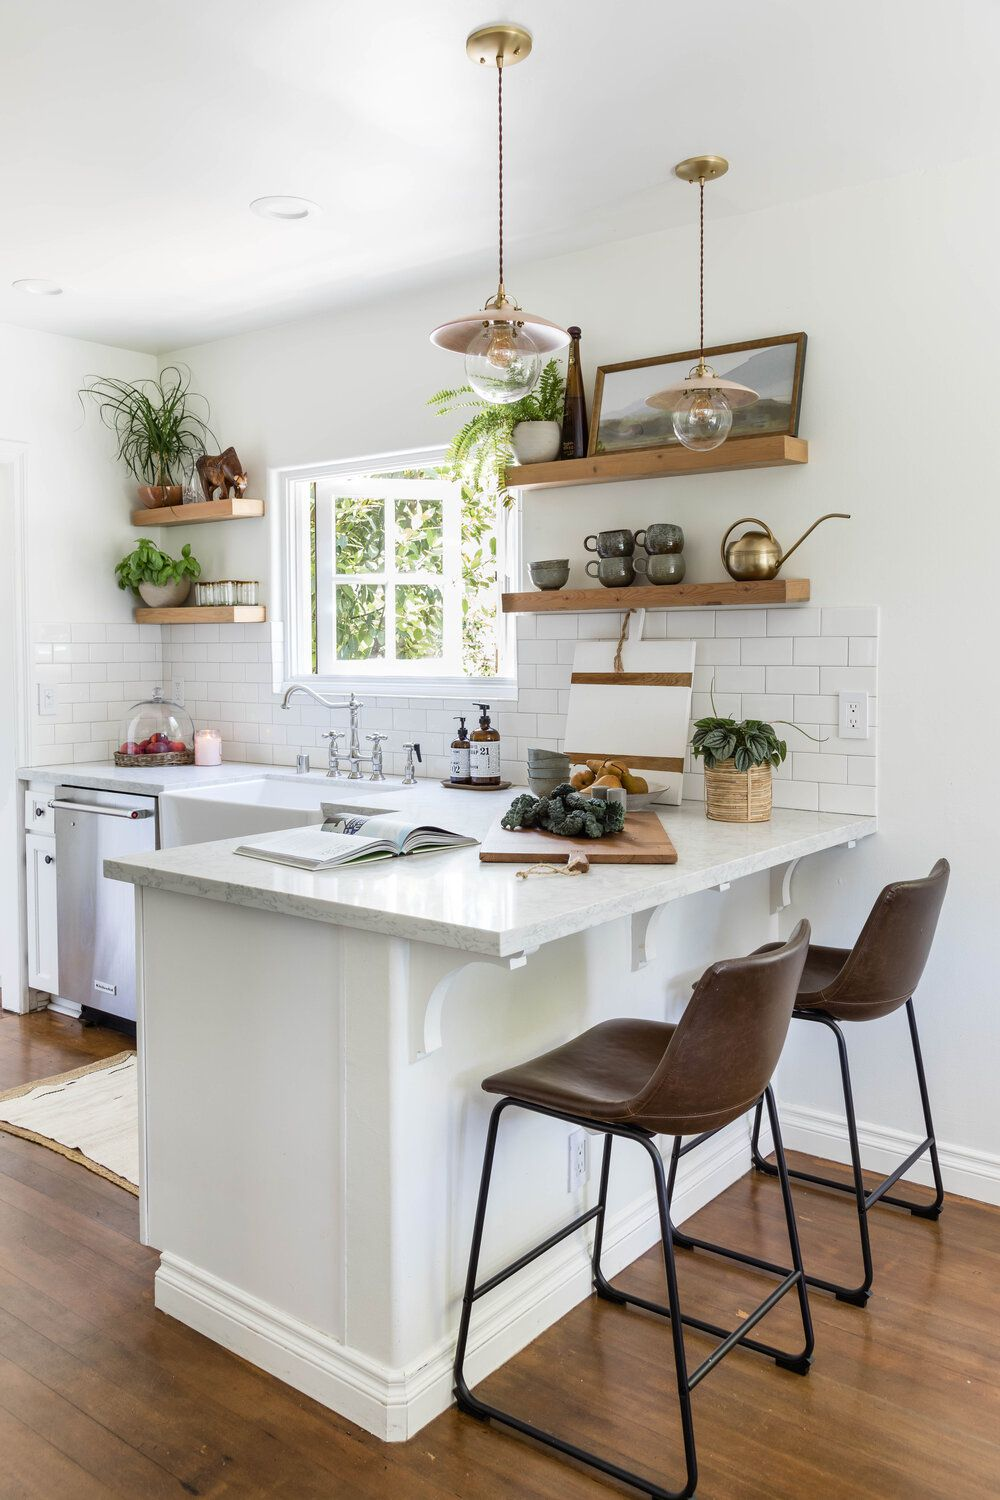 9 Kitchen Bar and Eat In Counter Design Ideas